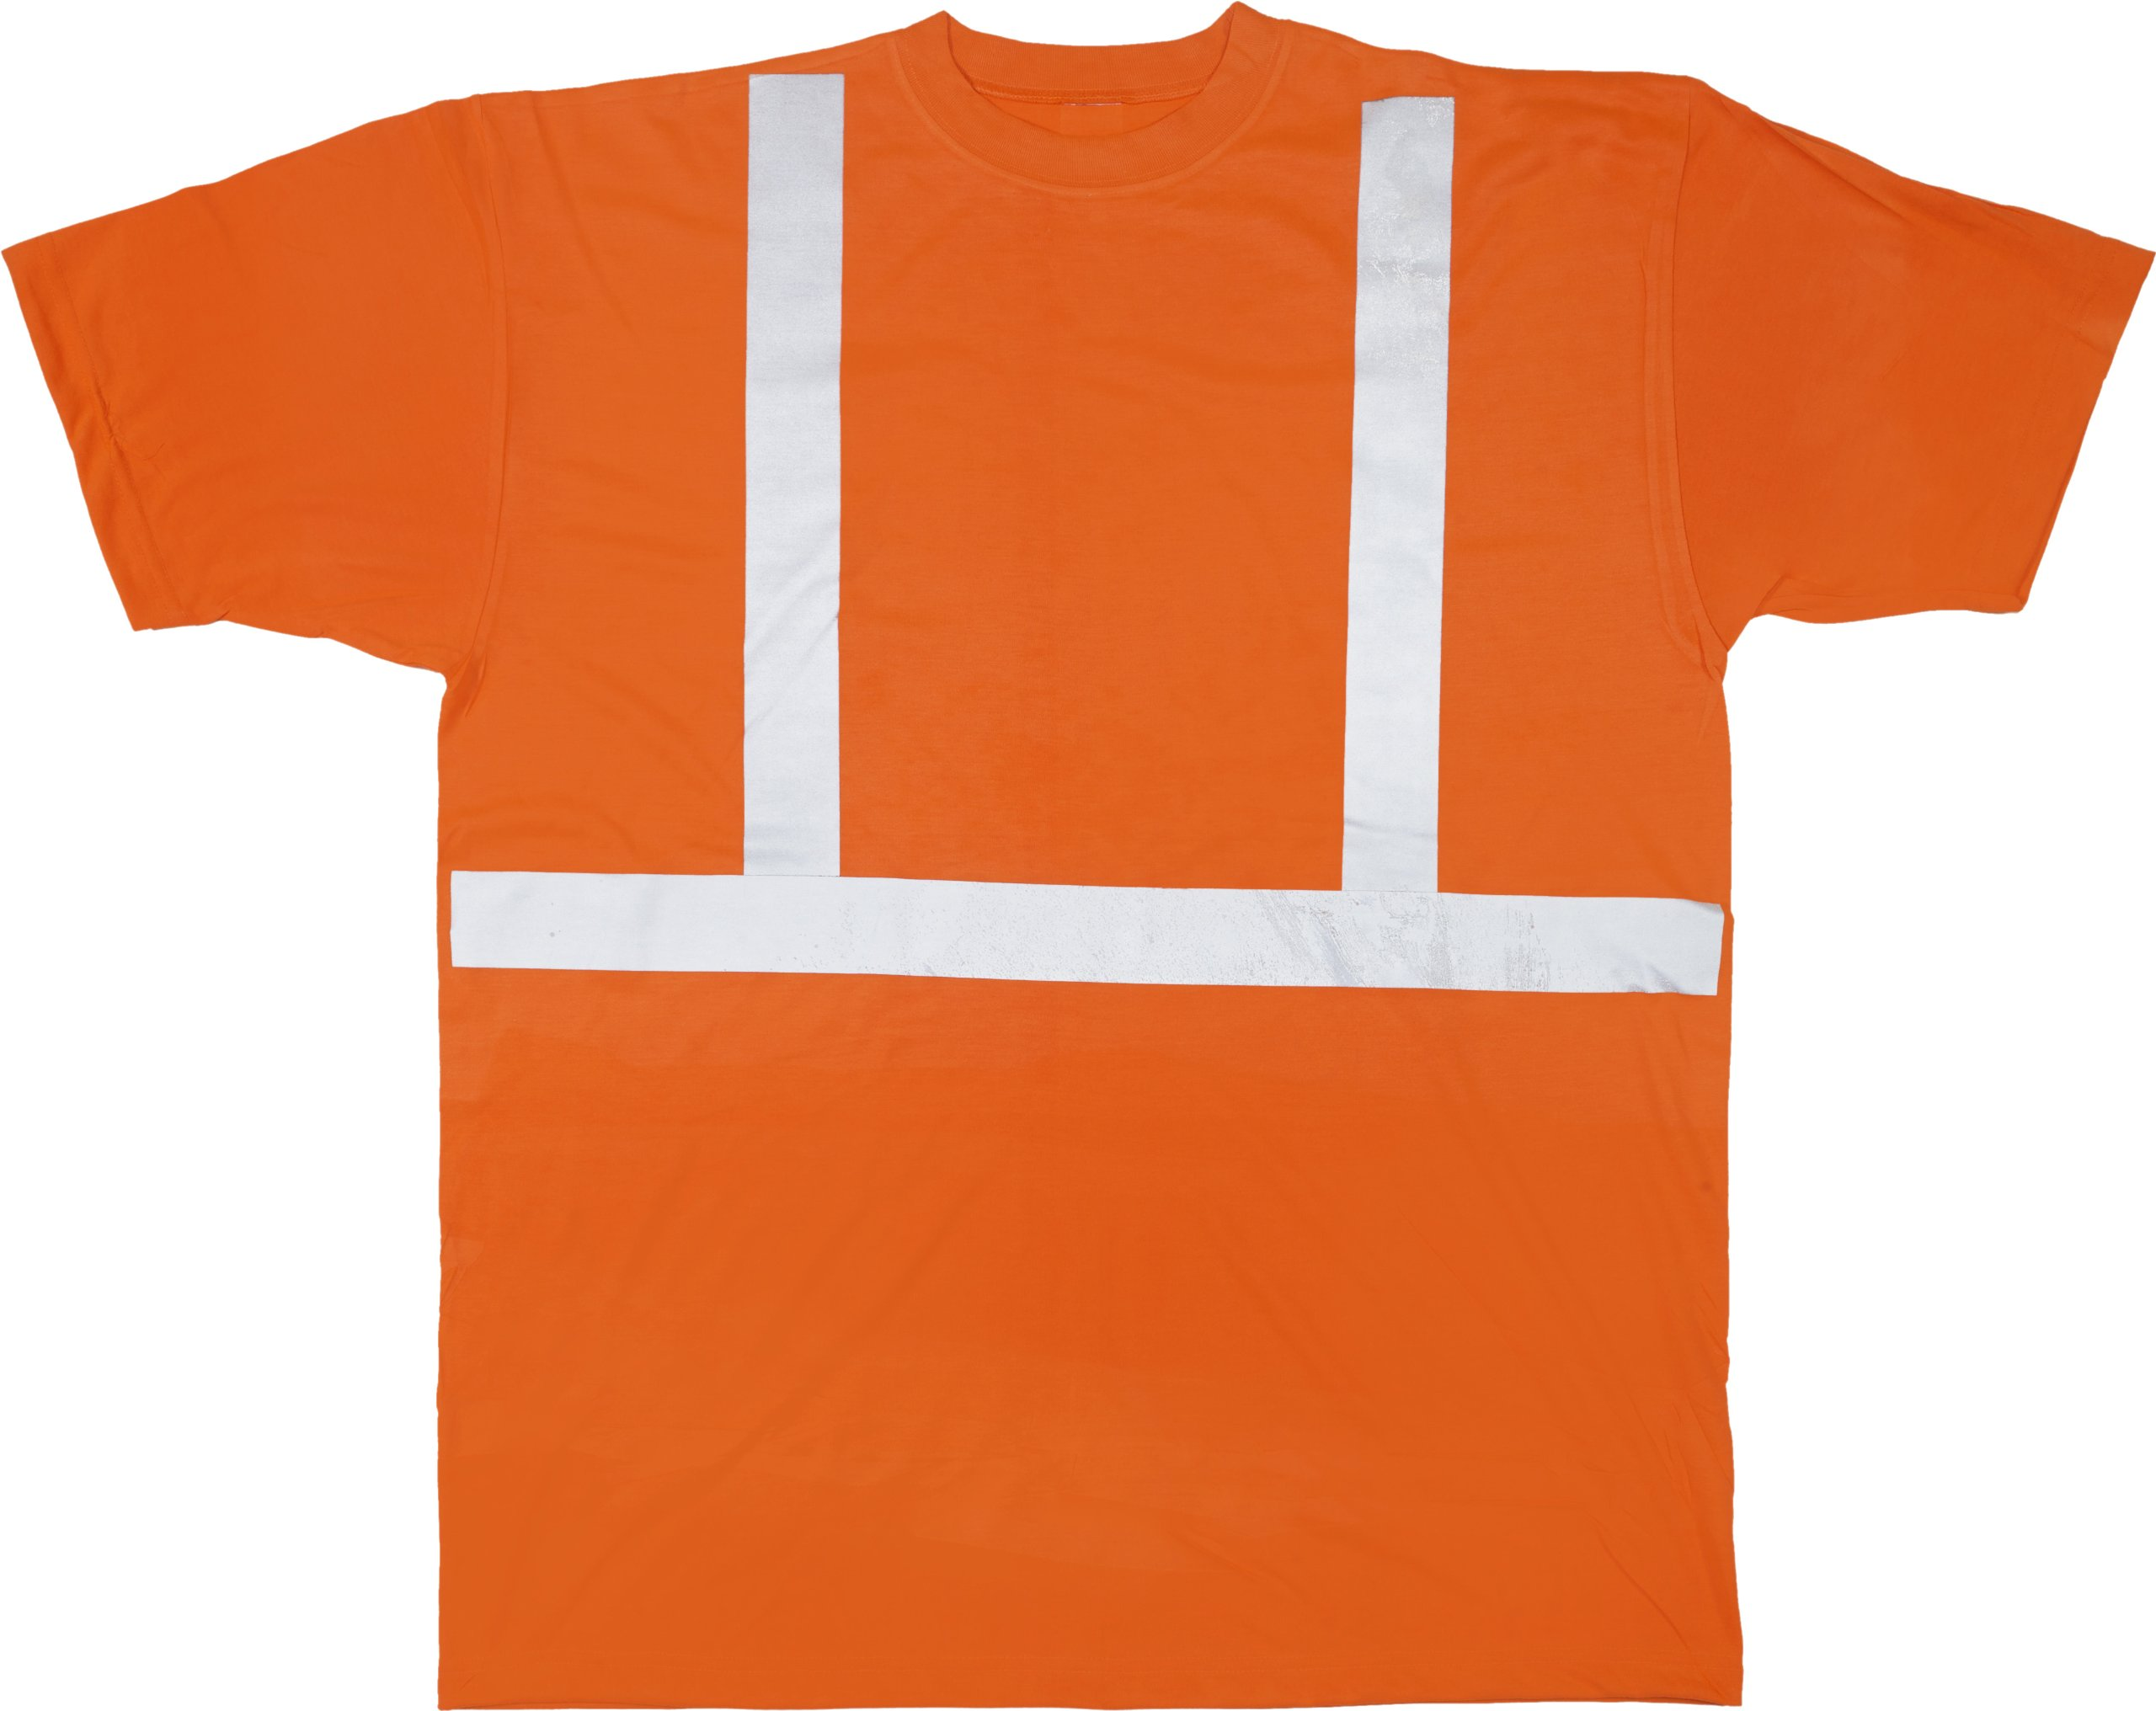 Mutual 16357 High Visibility Polyester ANSI Class 2 Safety Tee Shirt with 2'' Reflective Silver Stripes, 3X-Large, Orange